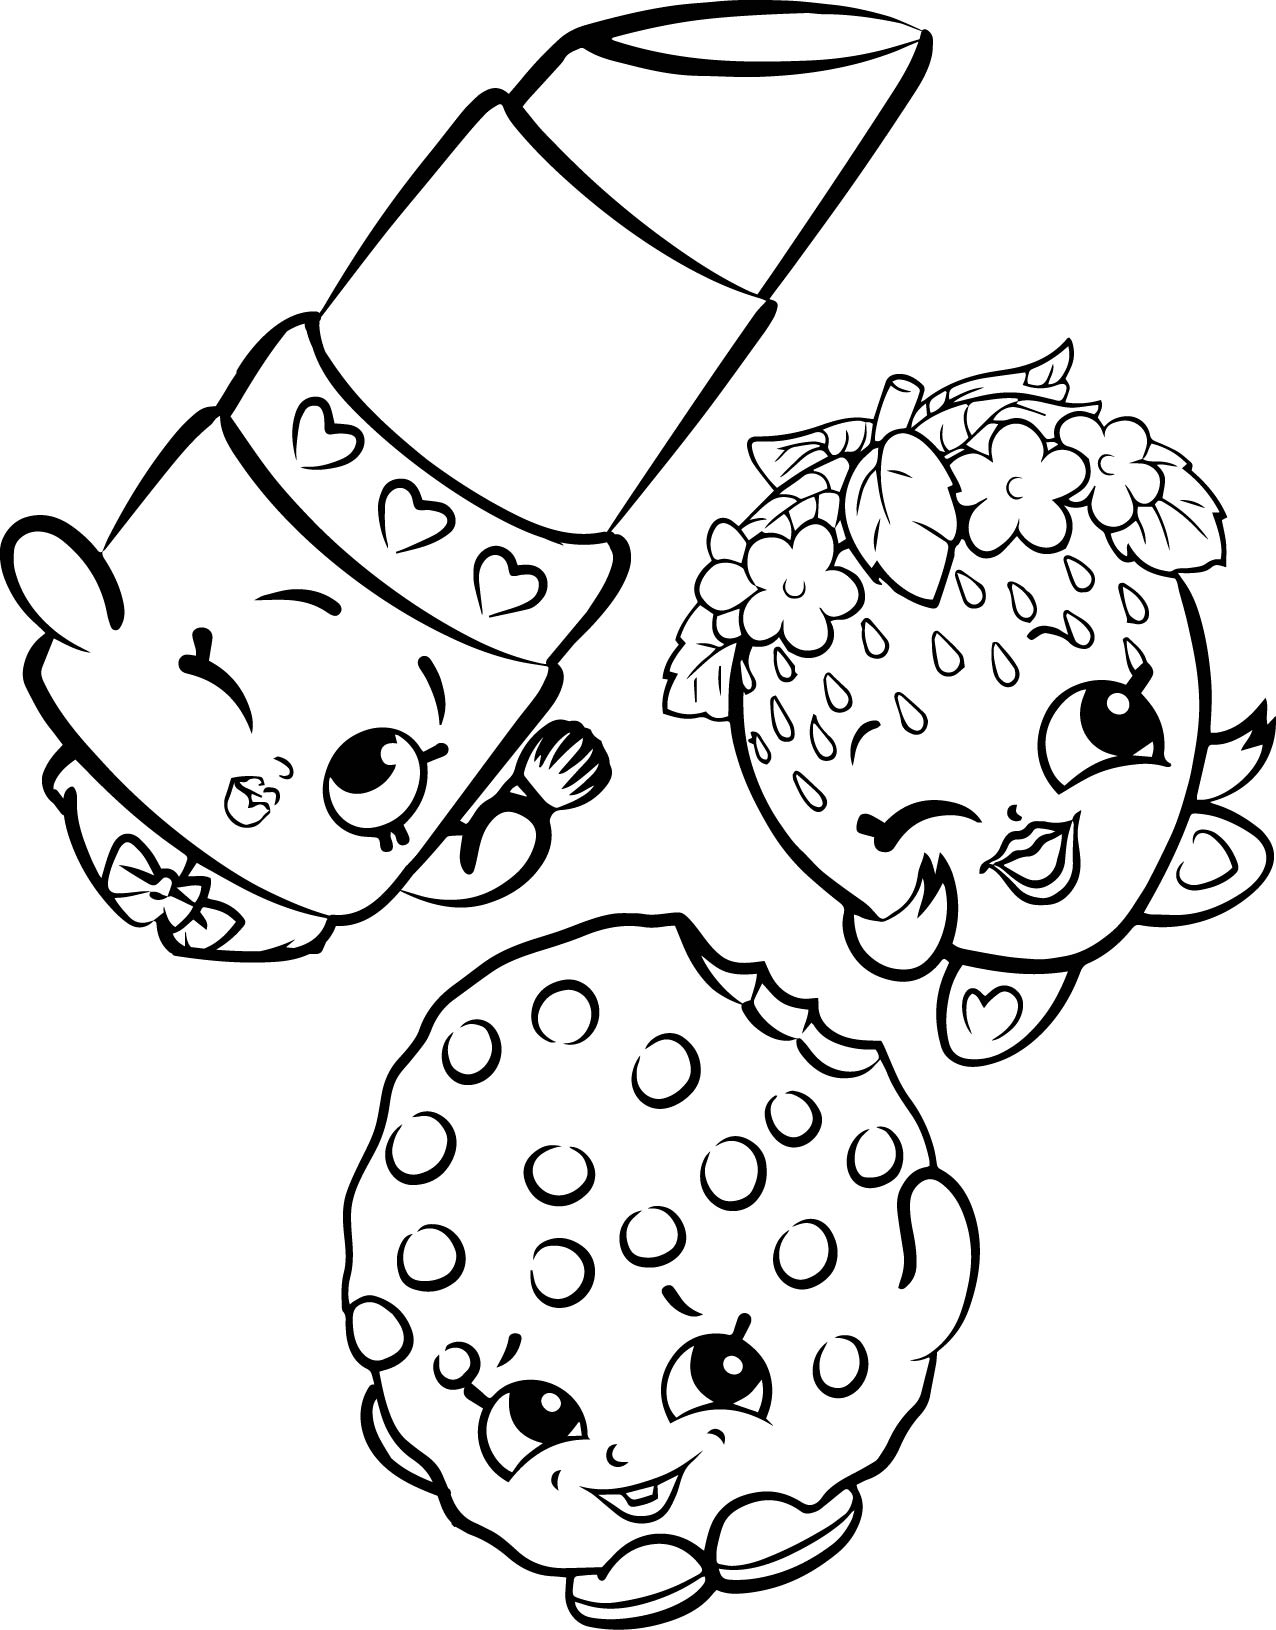 1276x1630 Awesome Free Shopkins Coloring Pages Gallery Printable Coloring